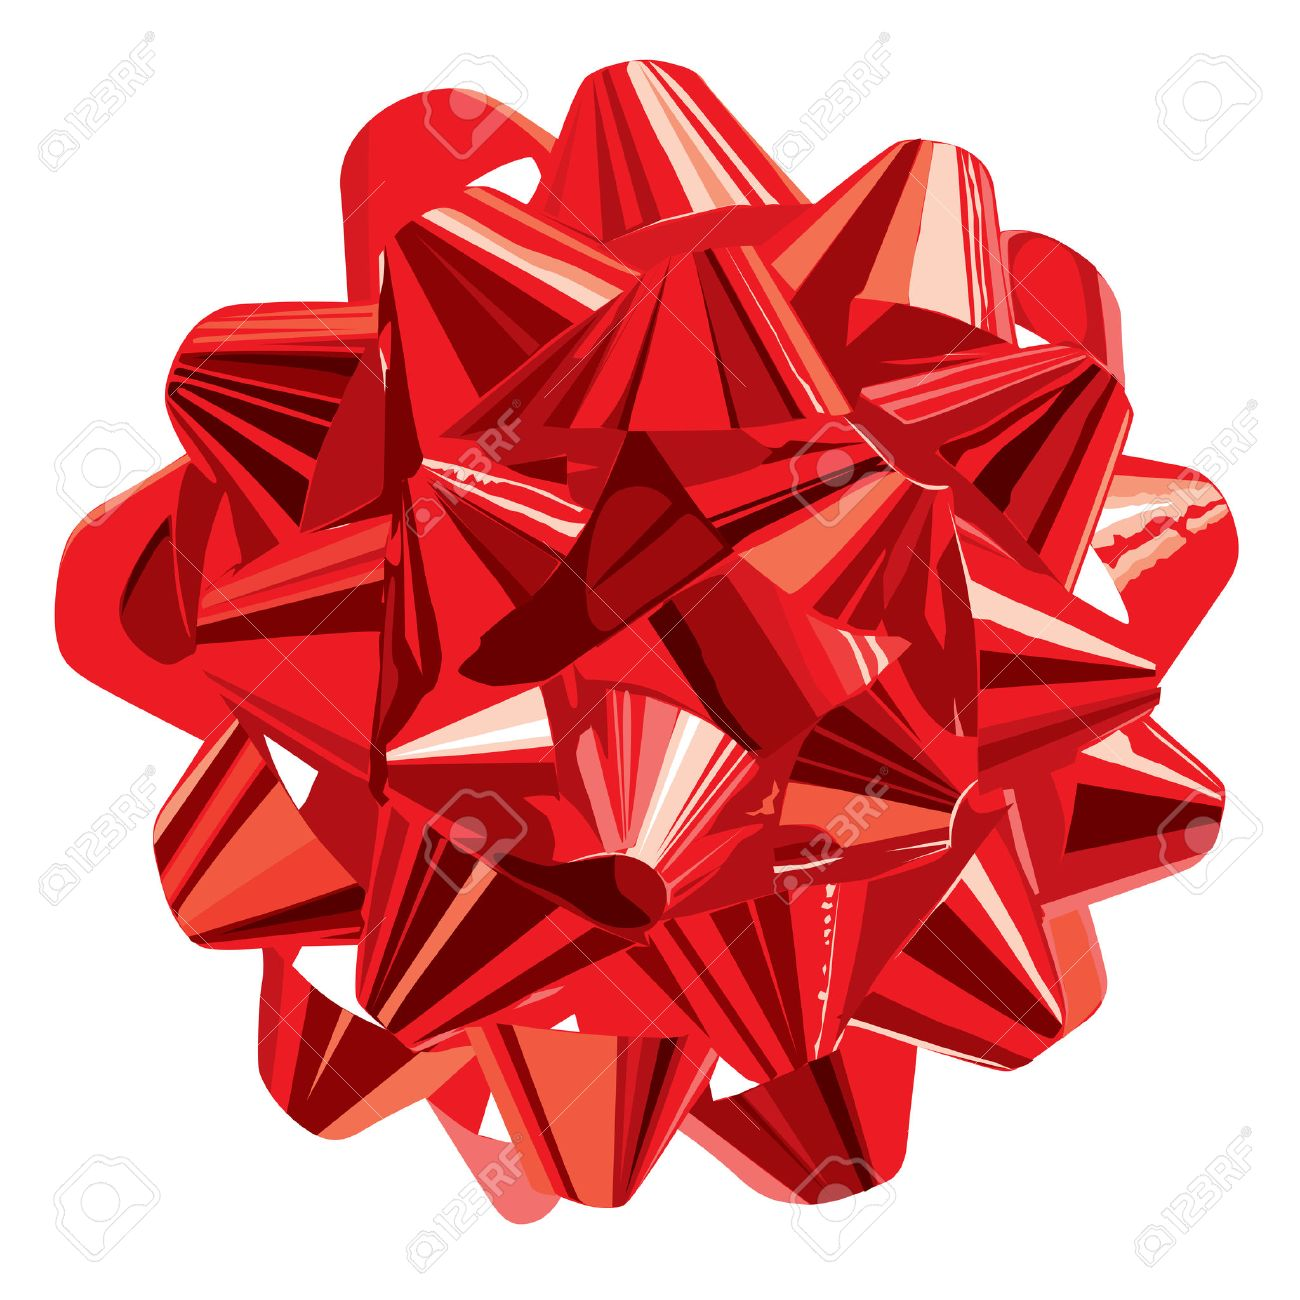 Red gift bow vector or xxl jpeg image royalty free cliparts red gift bow vector or xxl jpeg image stock vector 1833090 negle Image collections